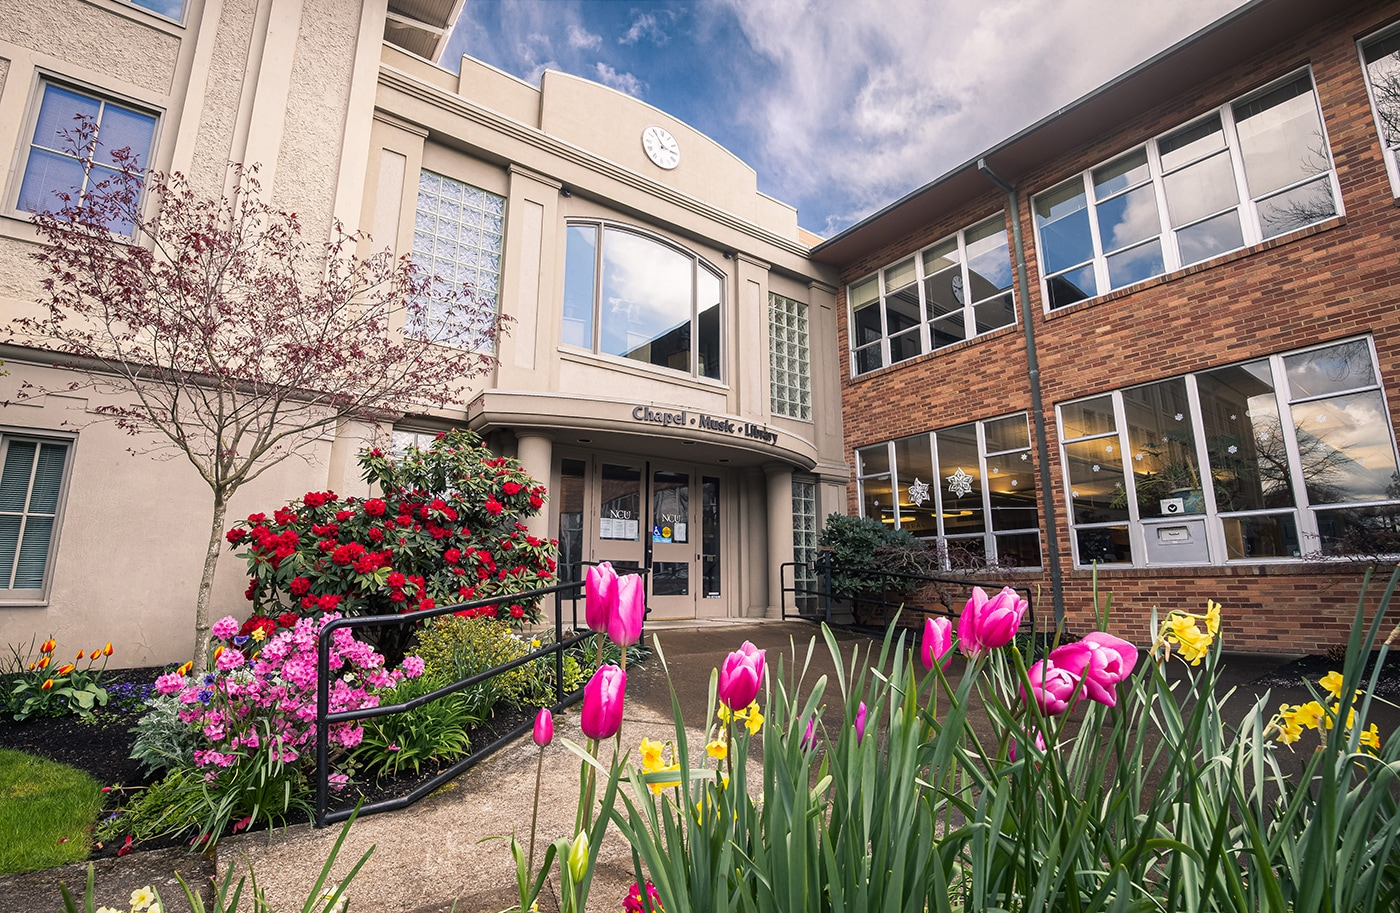 The center of faith, wisdom and service at Bushnell University